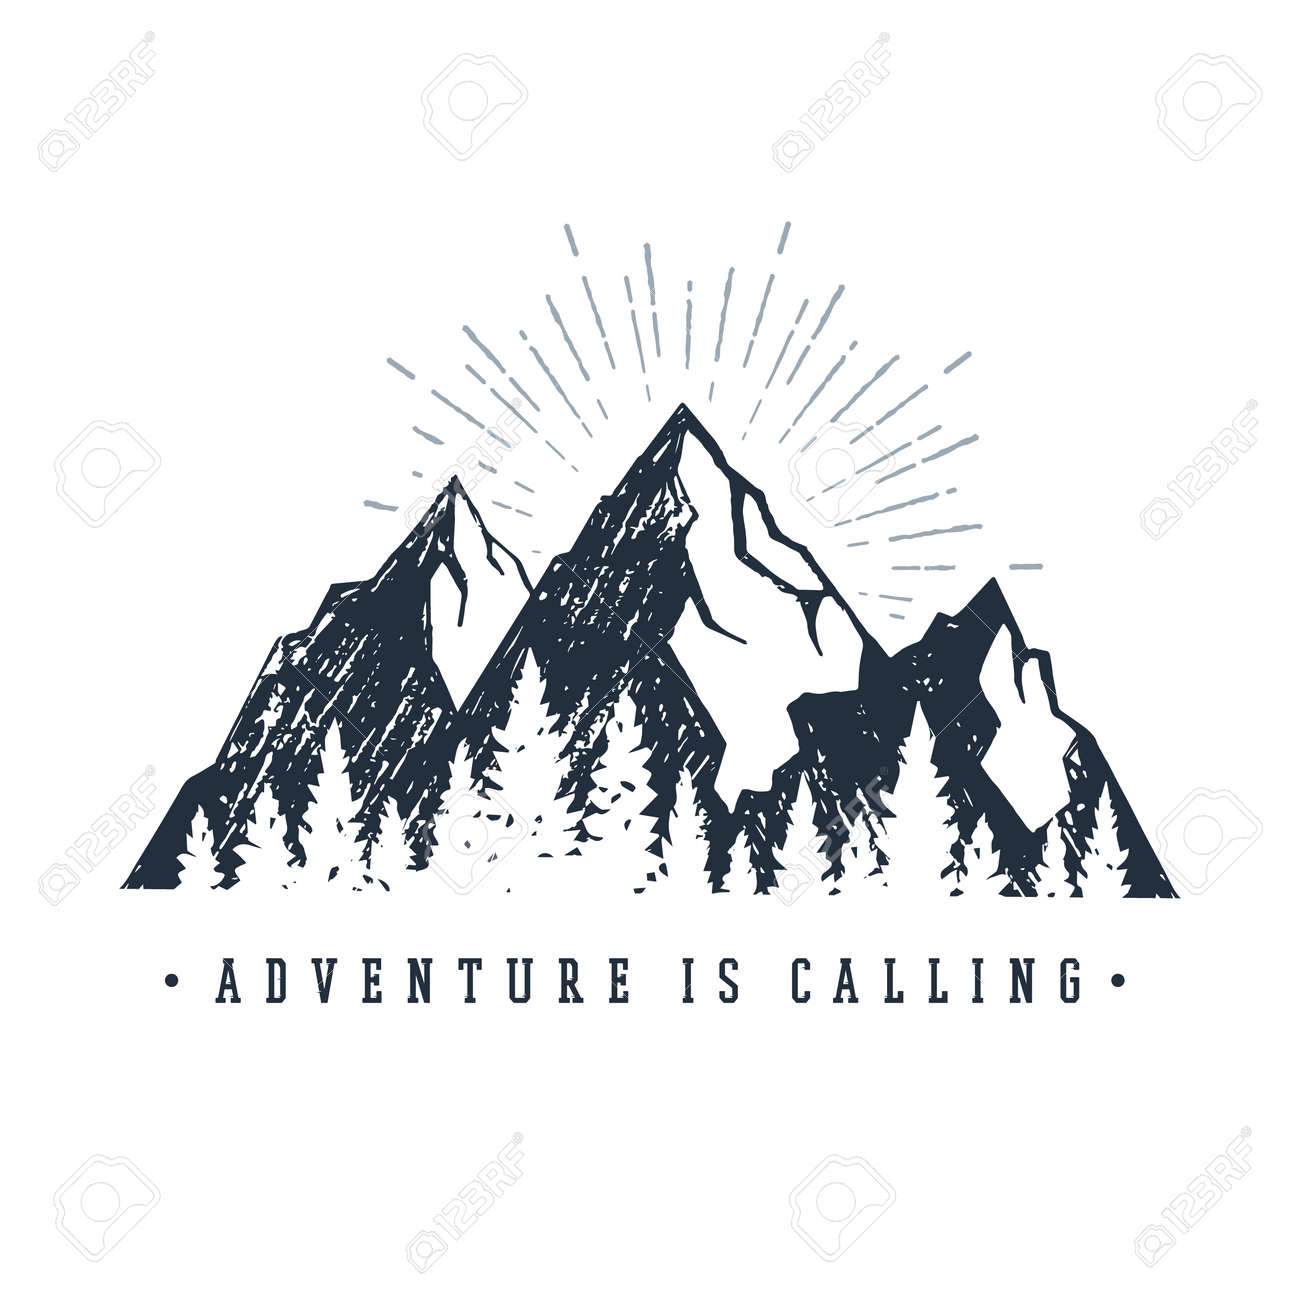 """Hand drawn inspirational label with mountains and pine trees textured vector illustrations and """"Adventure is calling"""" lettering. - 91098062"""